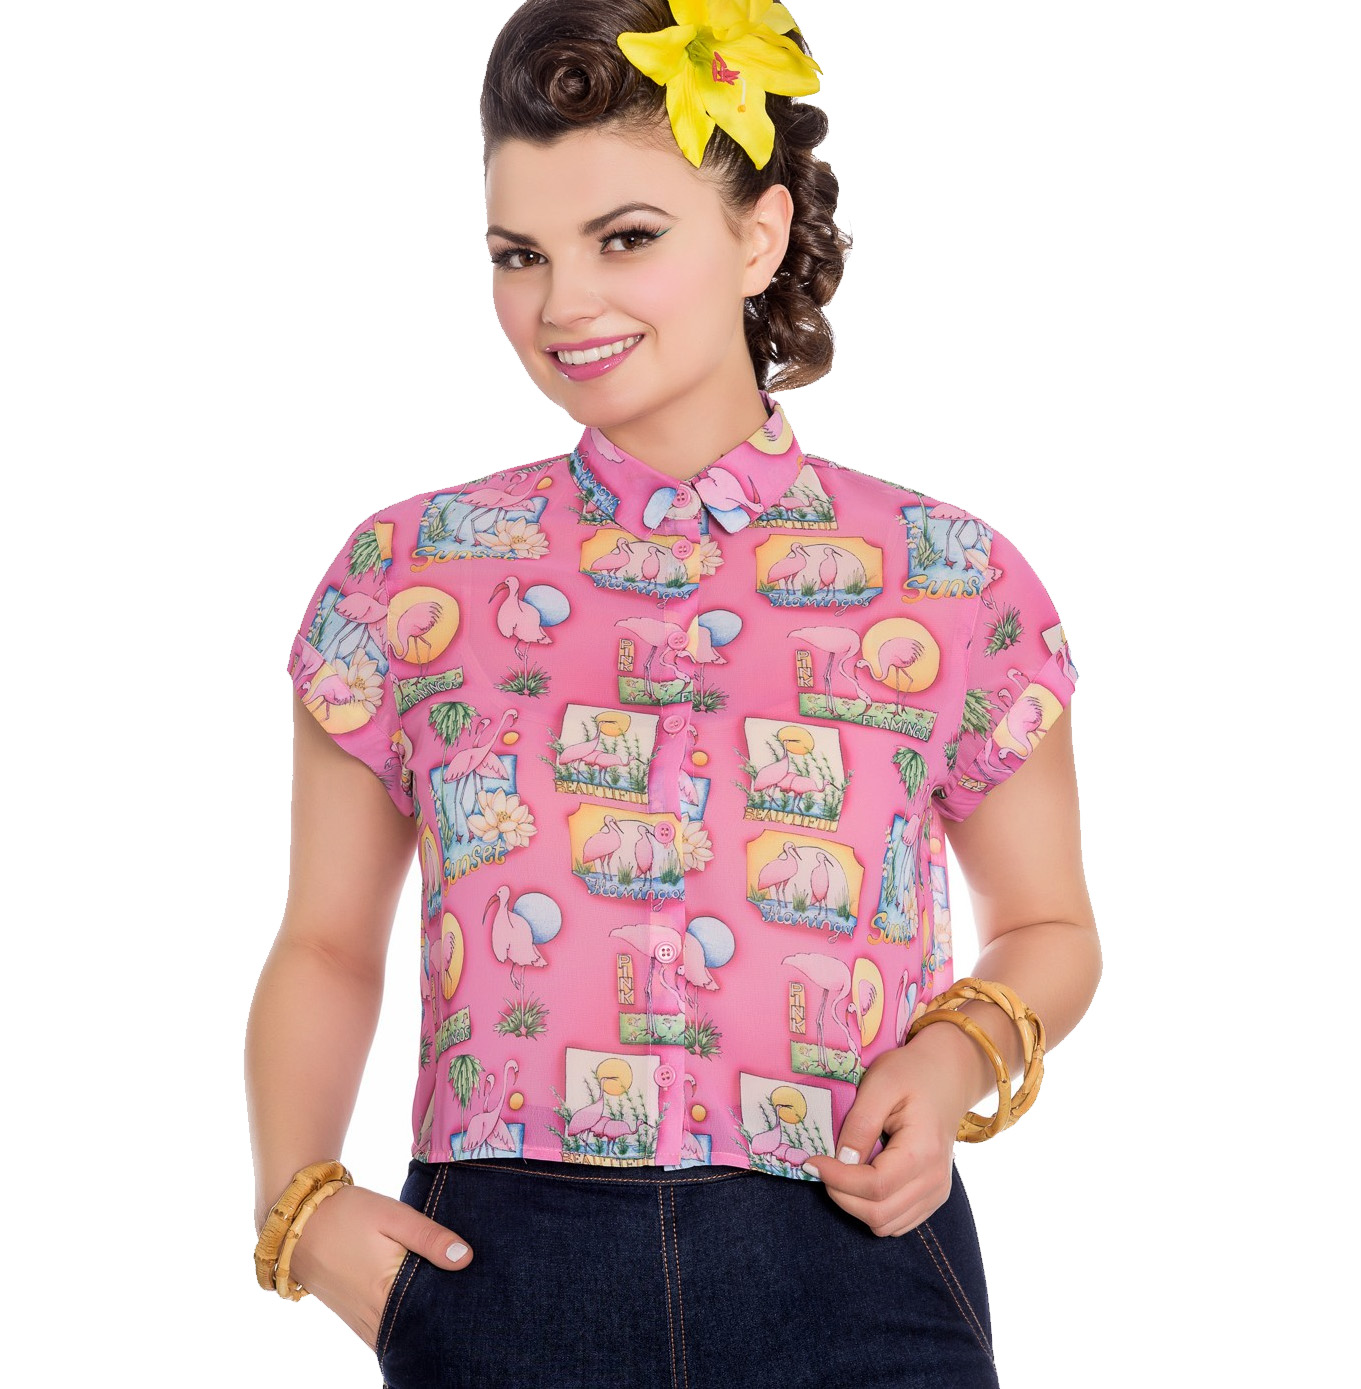 thumbnail 22 - Hell Bunny 50s Retro Top Pink Flamingo MAXINE Cropped Blouse Shirt All Sizes